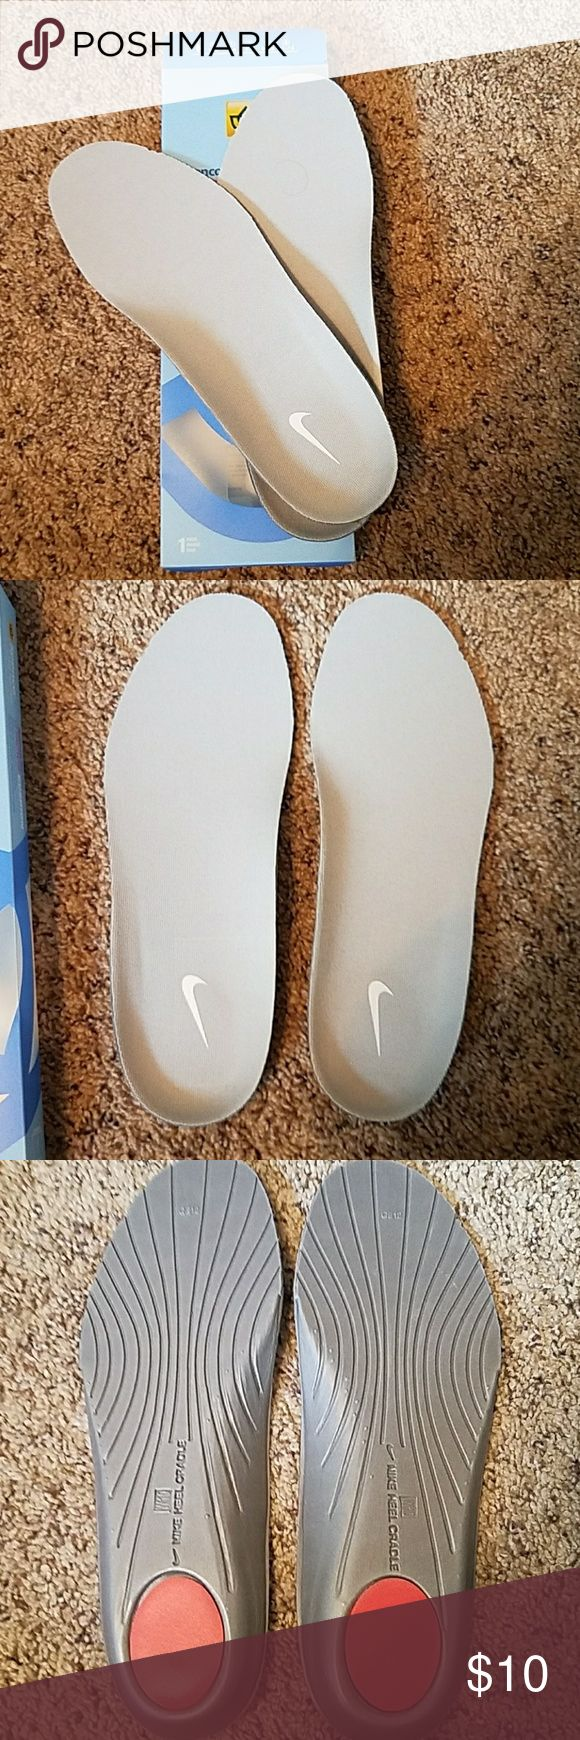 Nike Heel Cradle Women's Size 10 Sole insert for women's Nike sneakers Nike Shoes Athletic Shoes